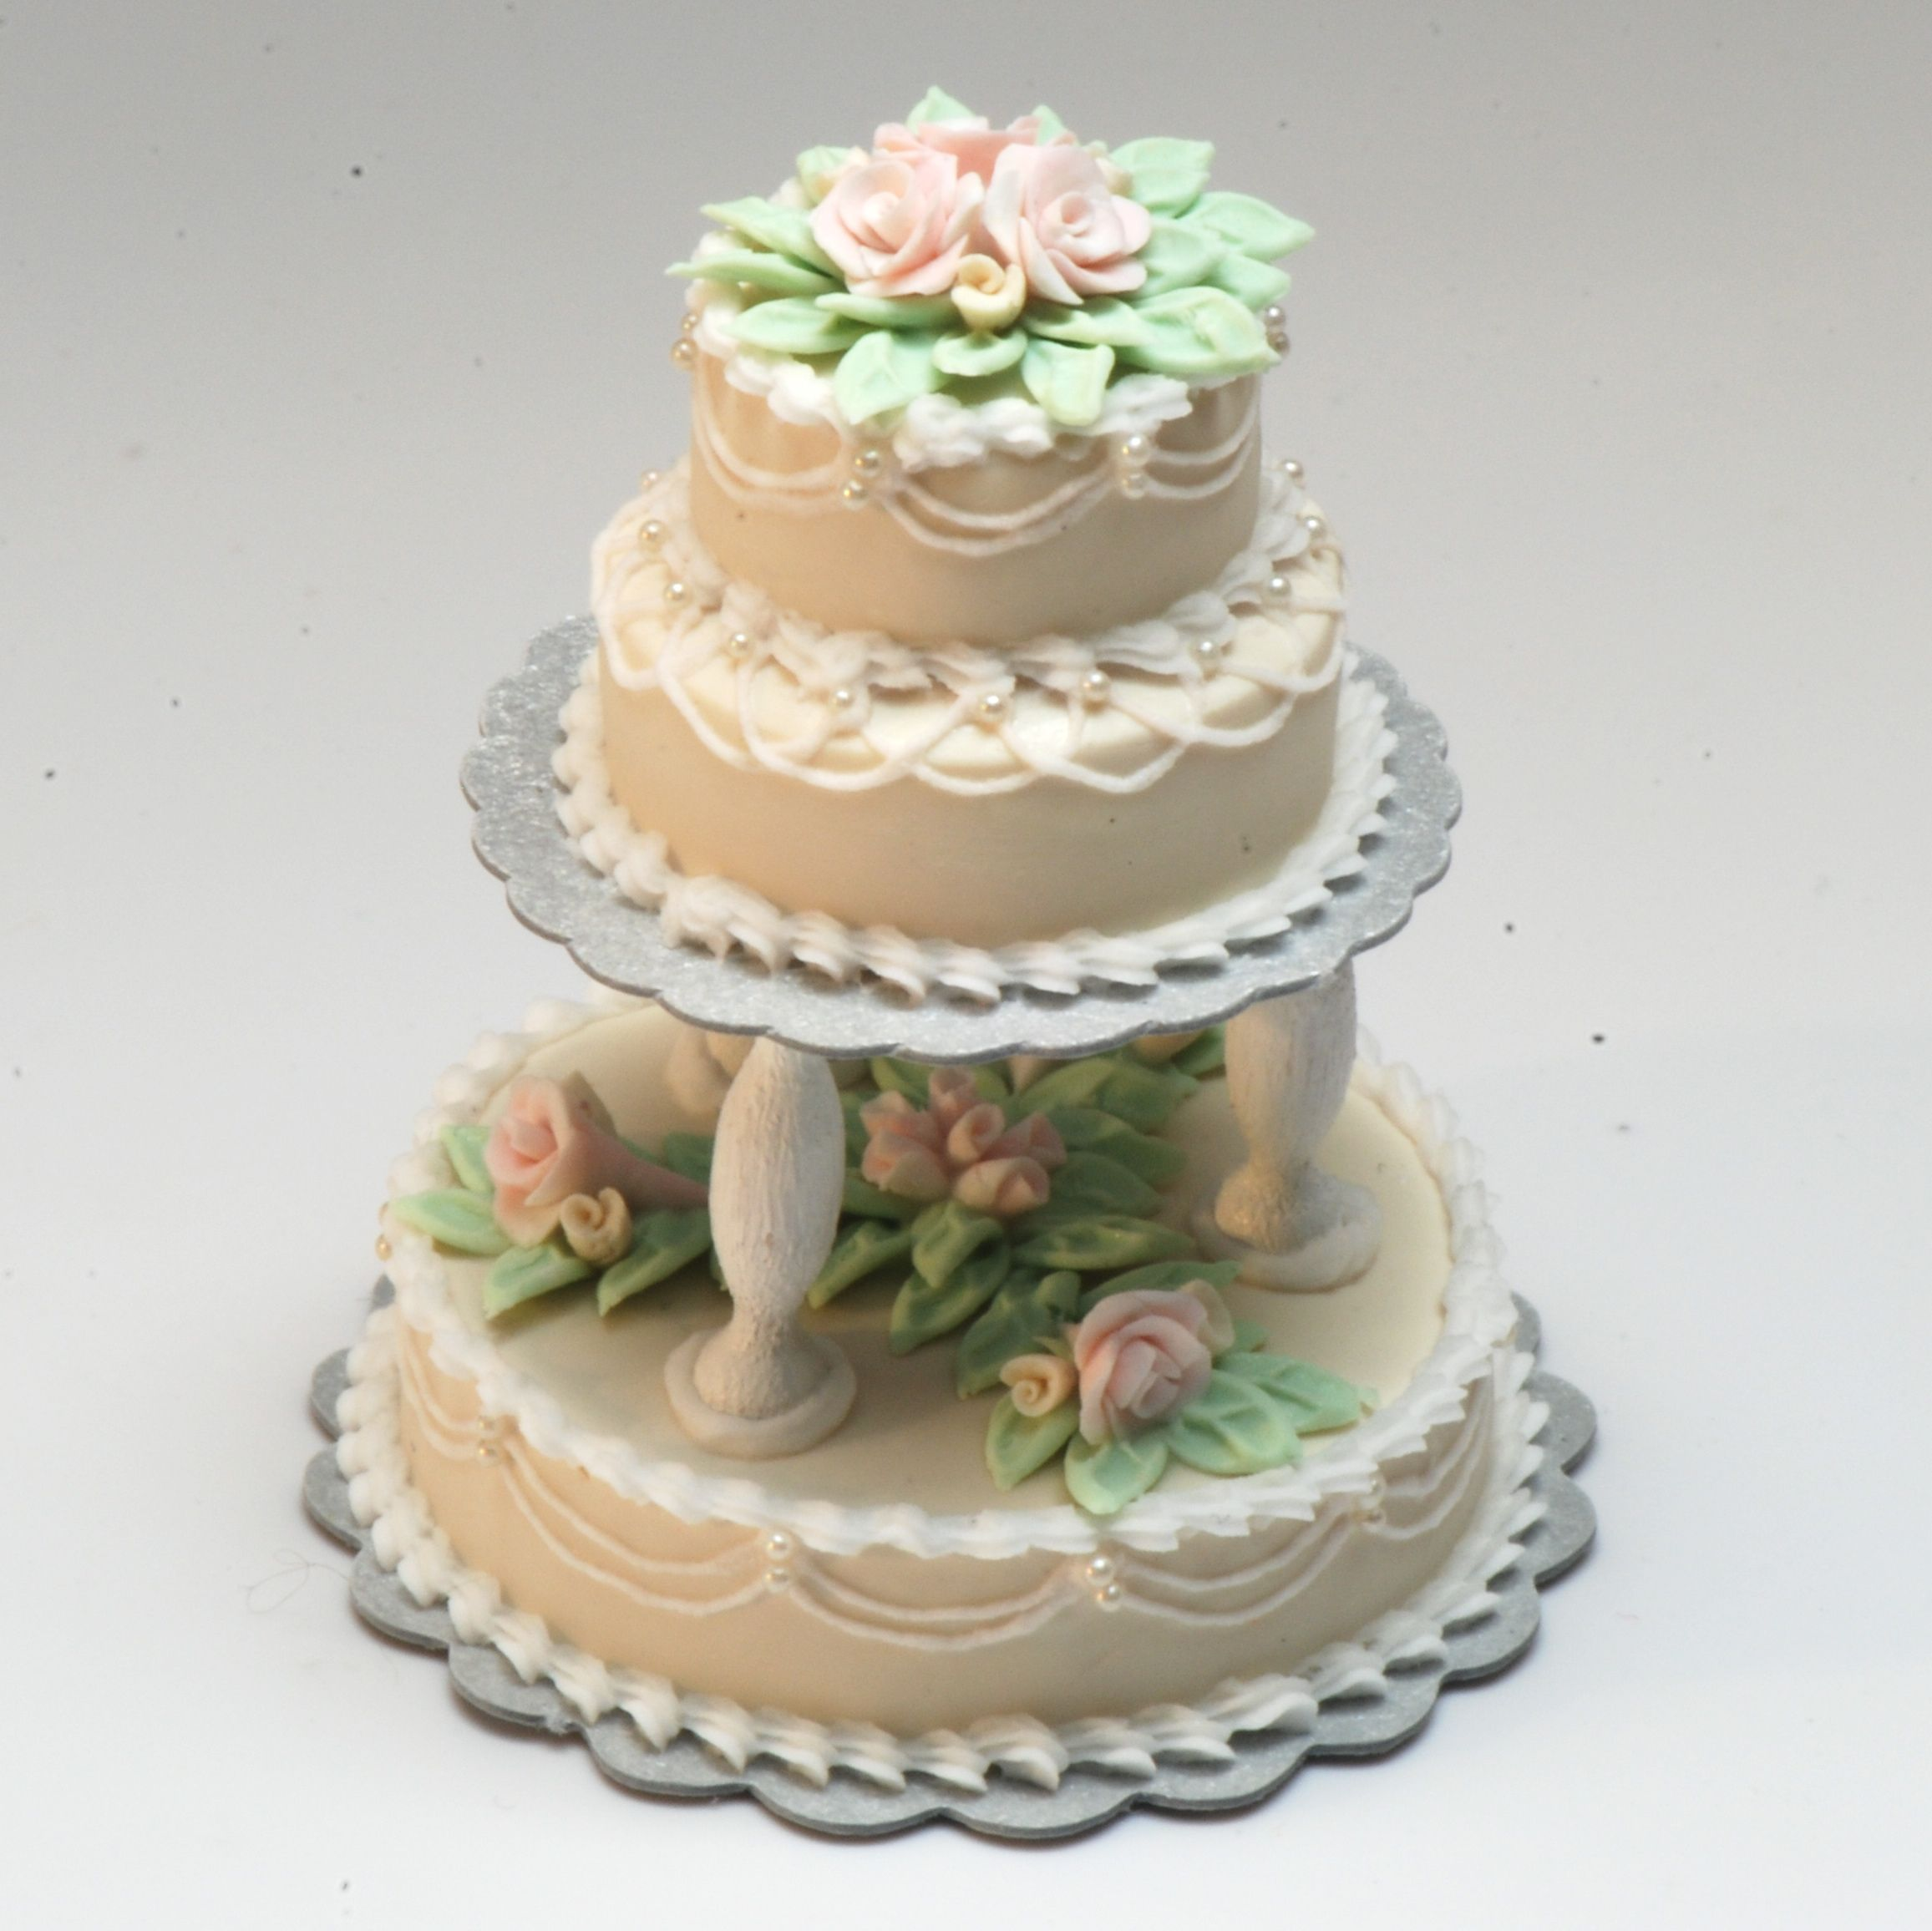 3 Tier Wedding Cake Make Cake Decoration And Cake Baking Easy With These Cake  Tins.